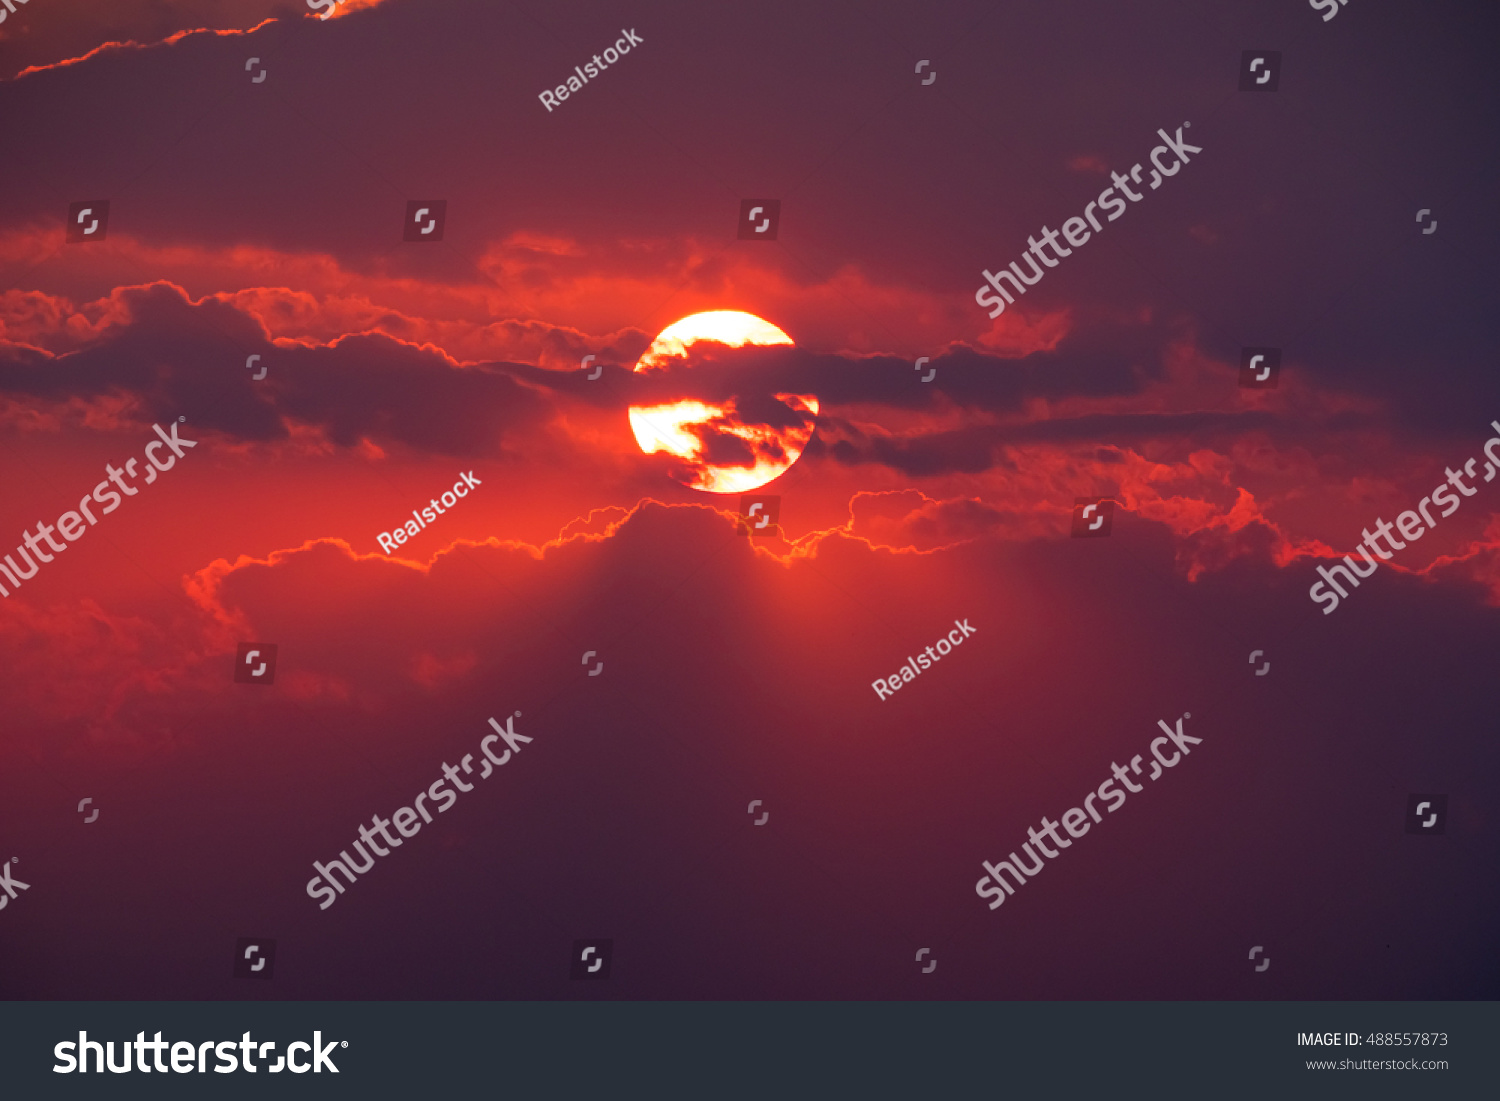 The picturesque red sunset with stormy cloud #488557873